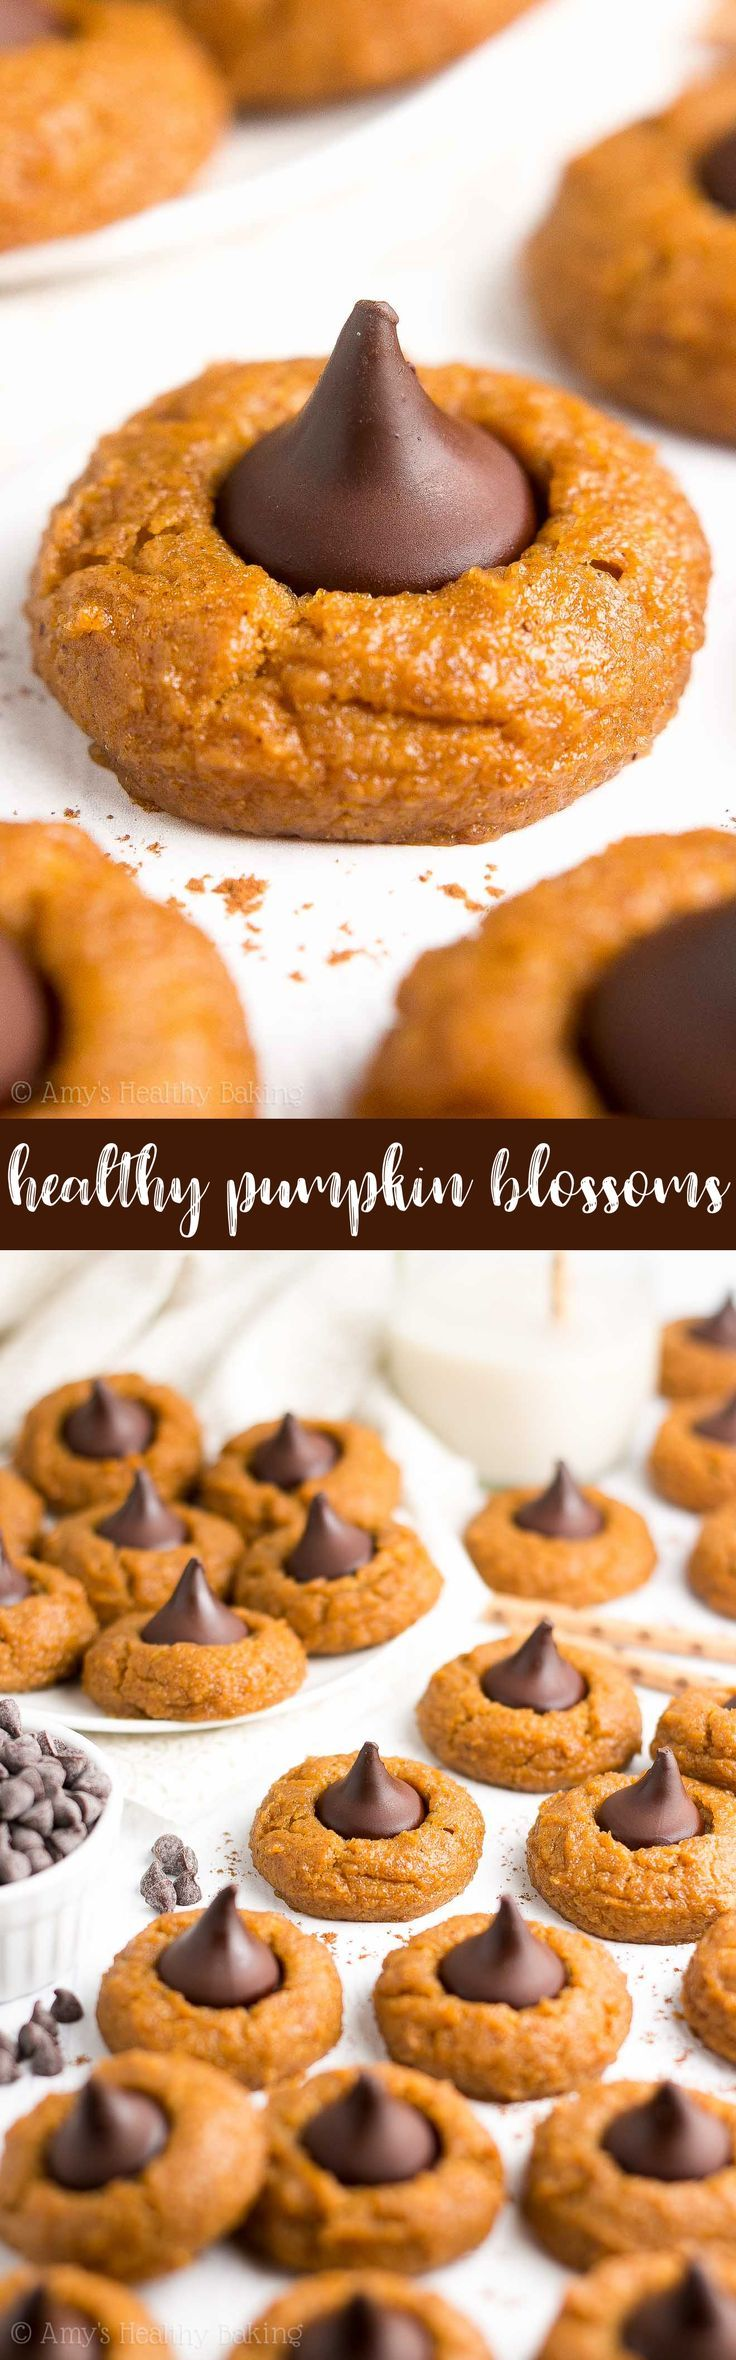 {HEALTHY!} Pumpkin Blossoms -- just 61 calories! Sweet pumpkin cookies + chocolate kisses in the center = PURE BLISS! Perfectly chewy, easy to make & 100% the BEST pumpkin cookies you'll ever eat! #recipe